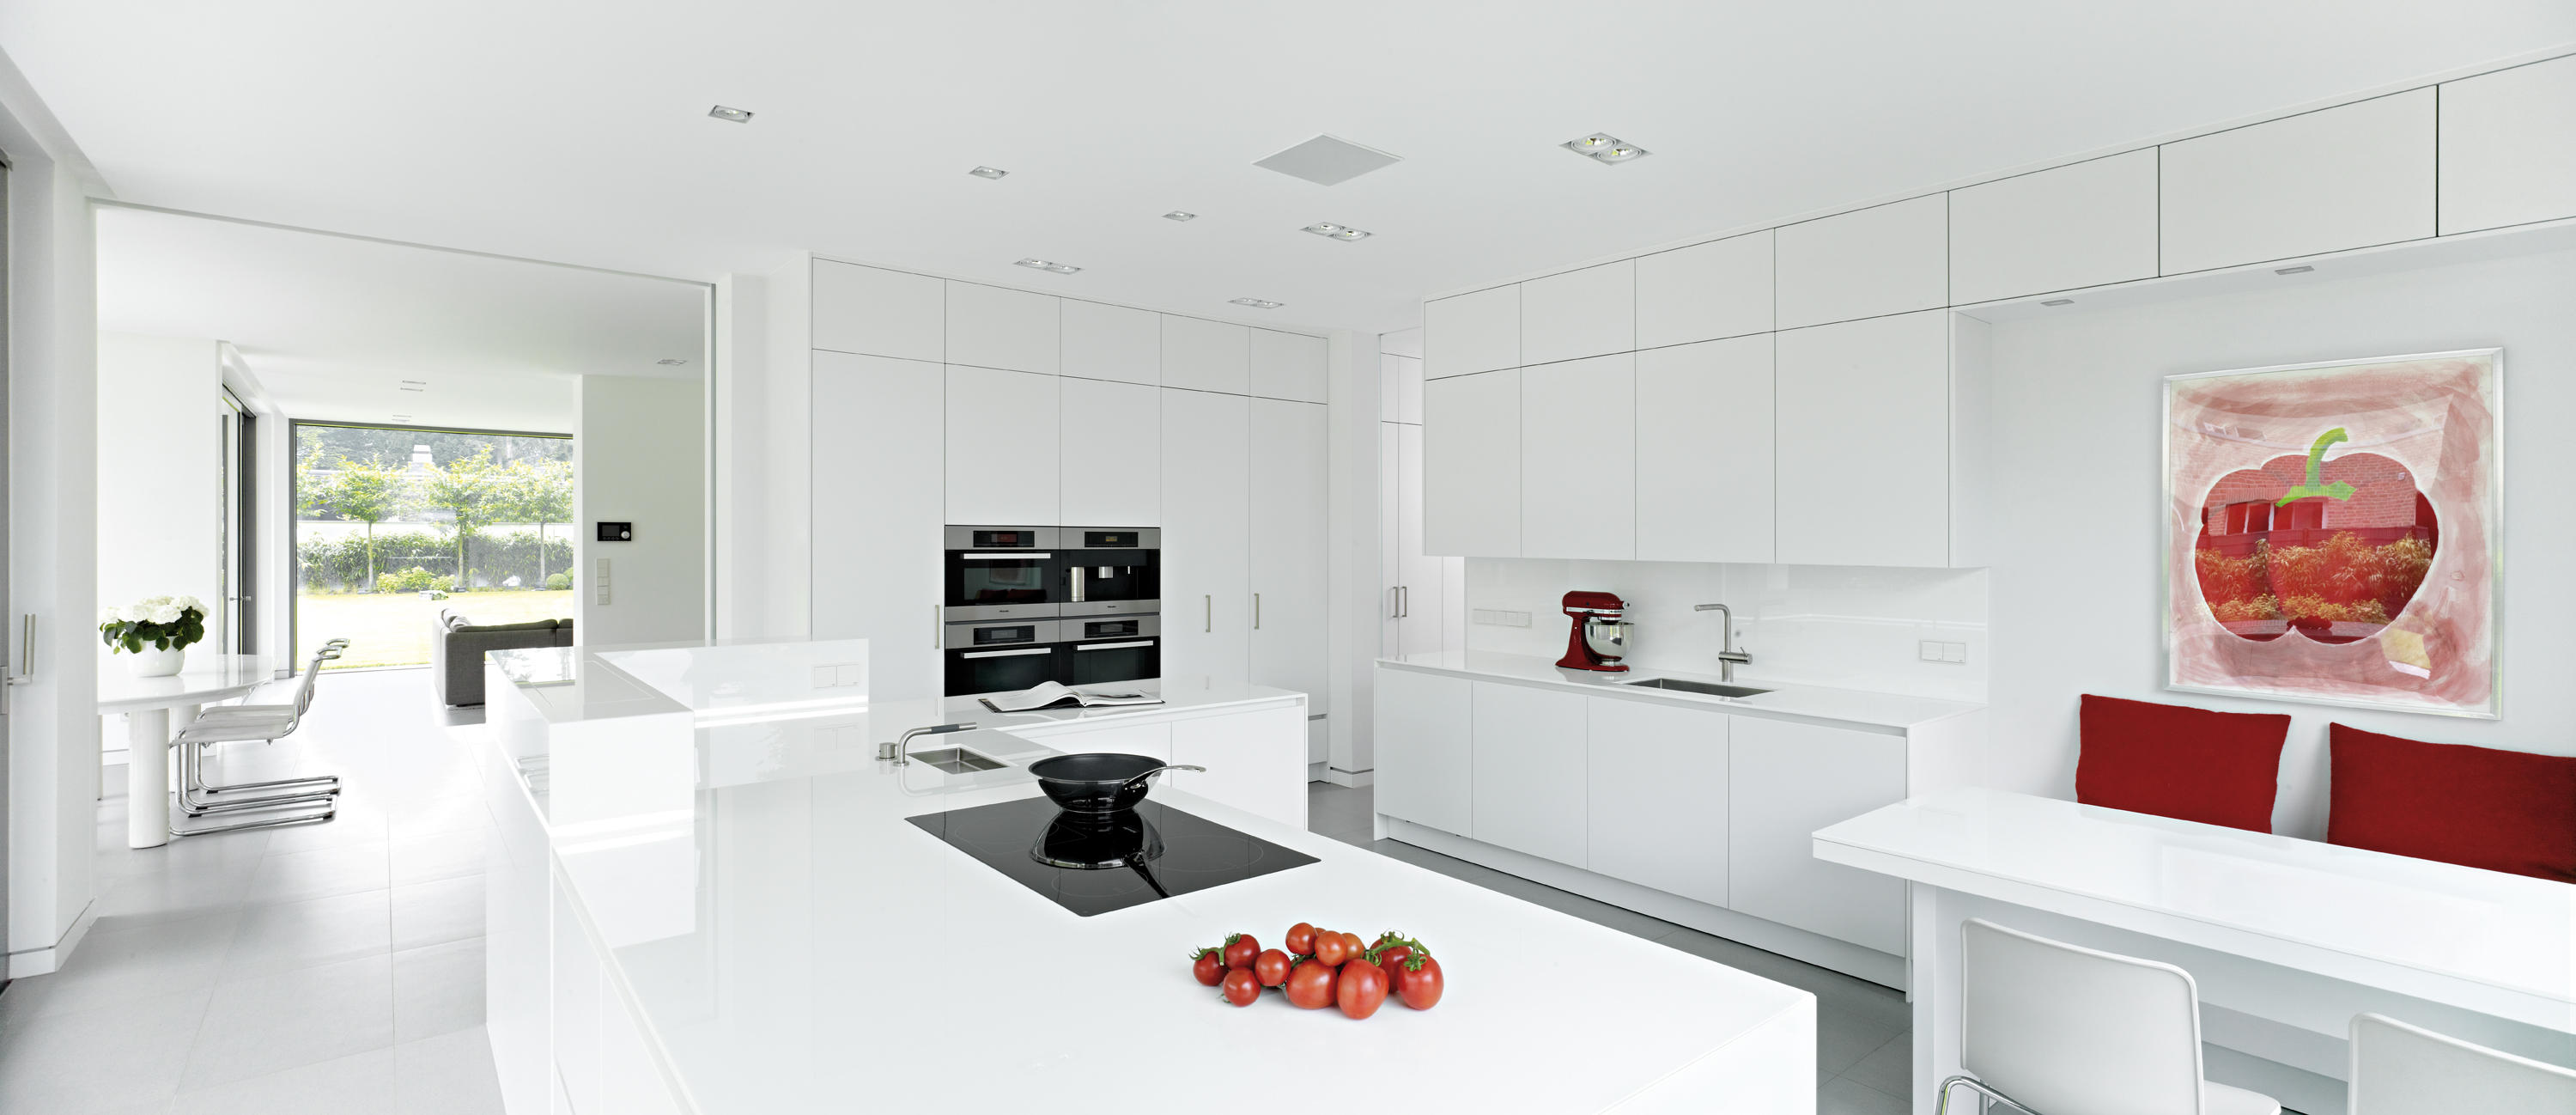 Haus Dusseldorf Bespoke Kitchens From Eggersmann Architonic